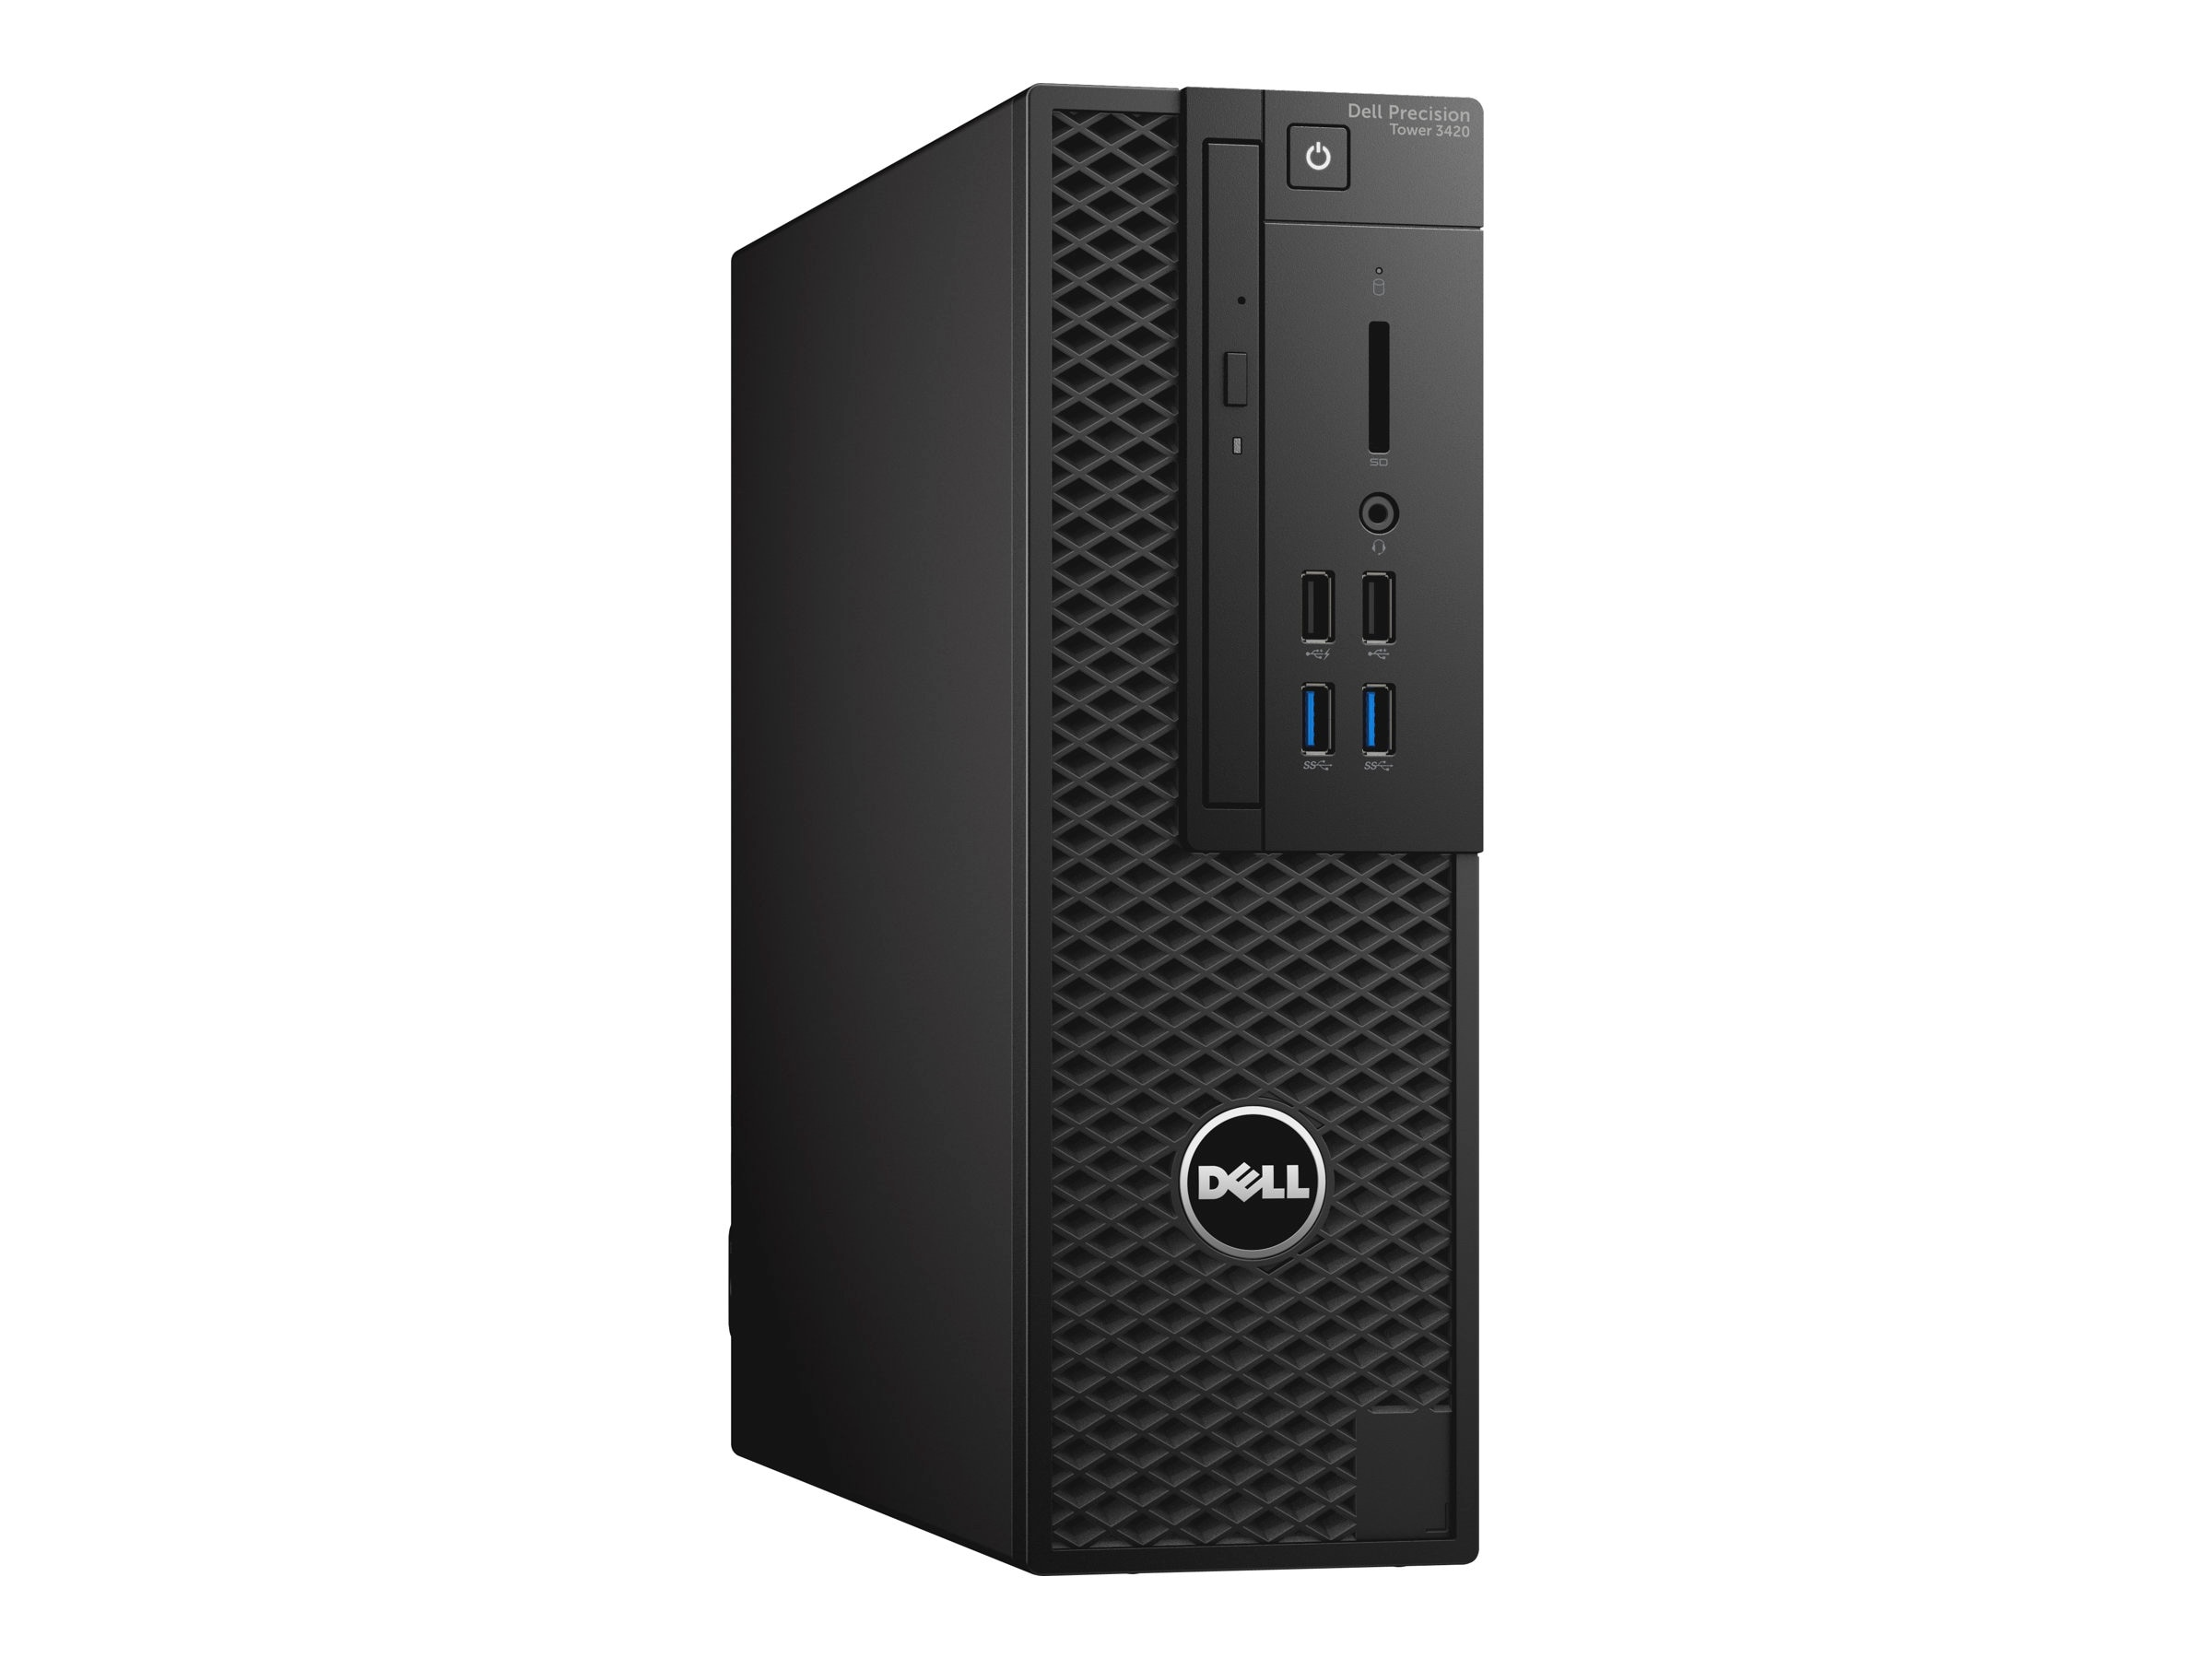 Dell Precision 3420 3.2GHz Core i5 Microsoft Windows 7 Professional 64-bit Edition   Windows 10 Pro, 167RW